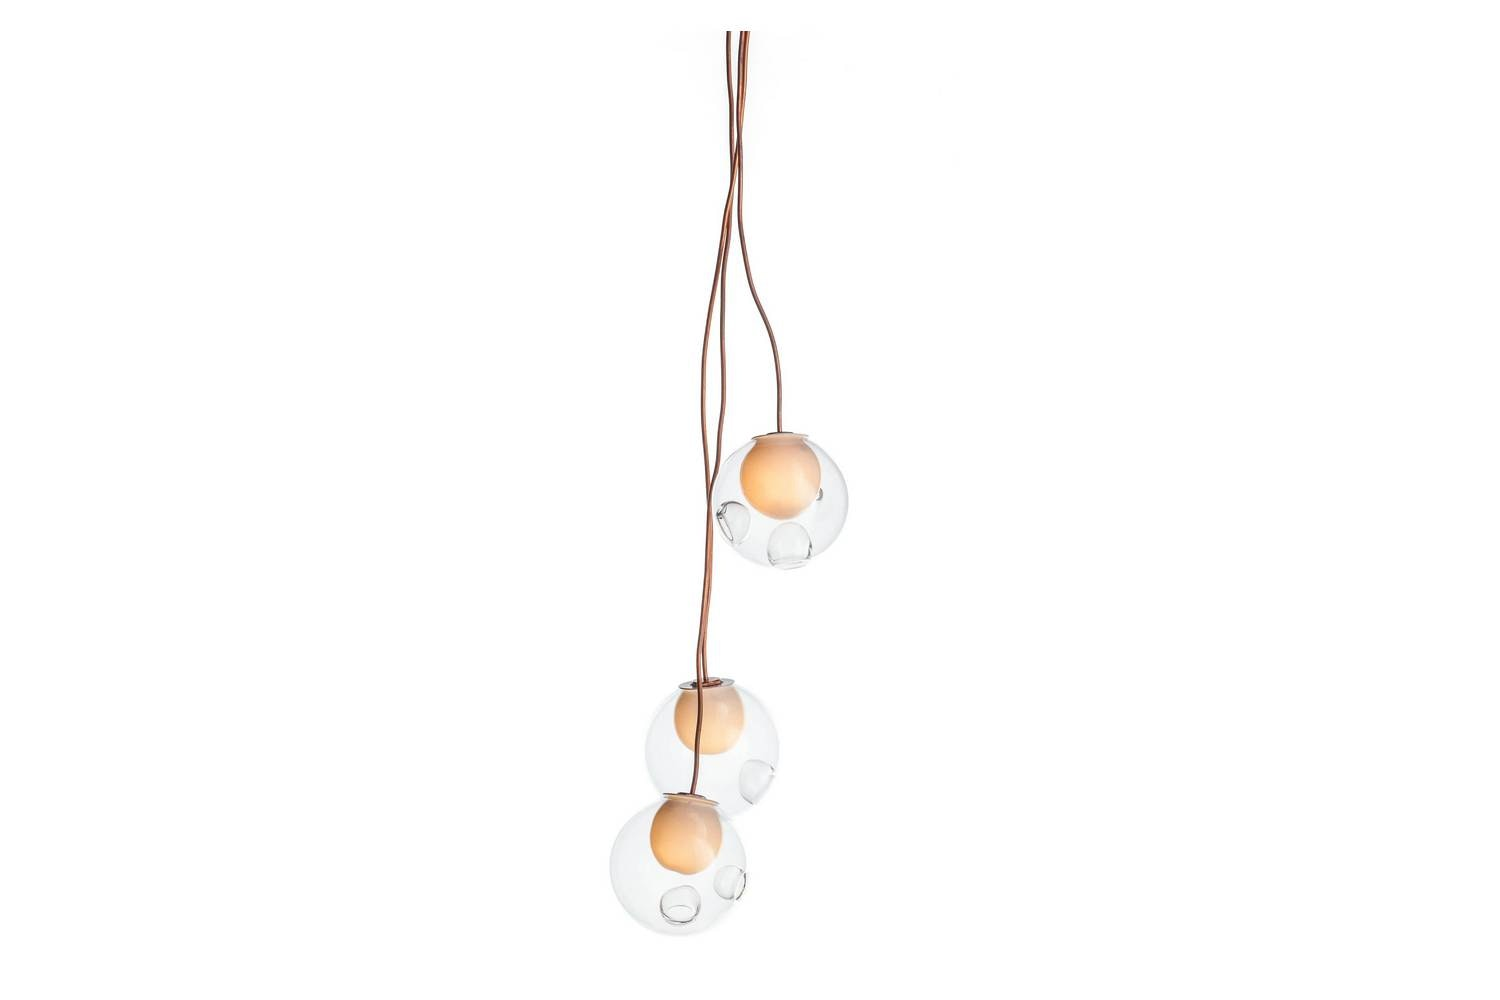 28.3 Copper Suspension Lamp by Omer Arbel for Bocci